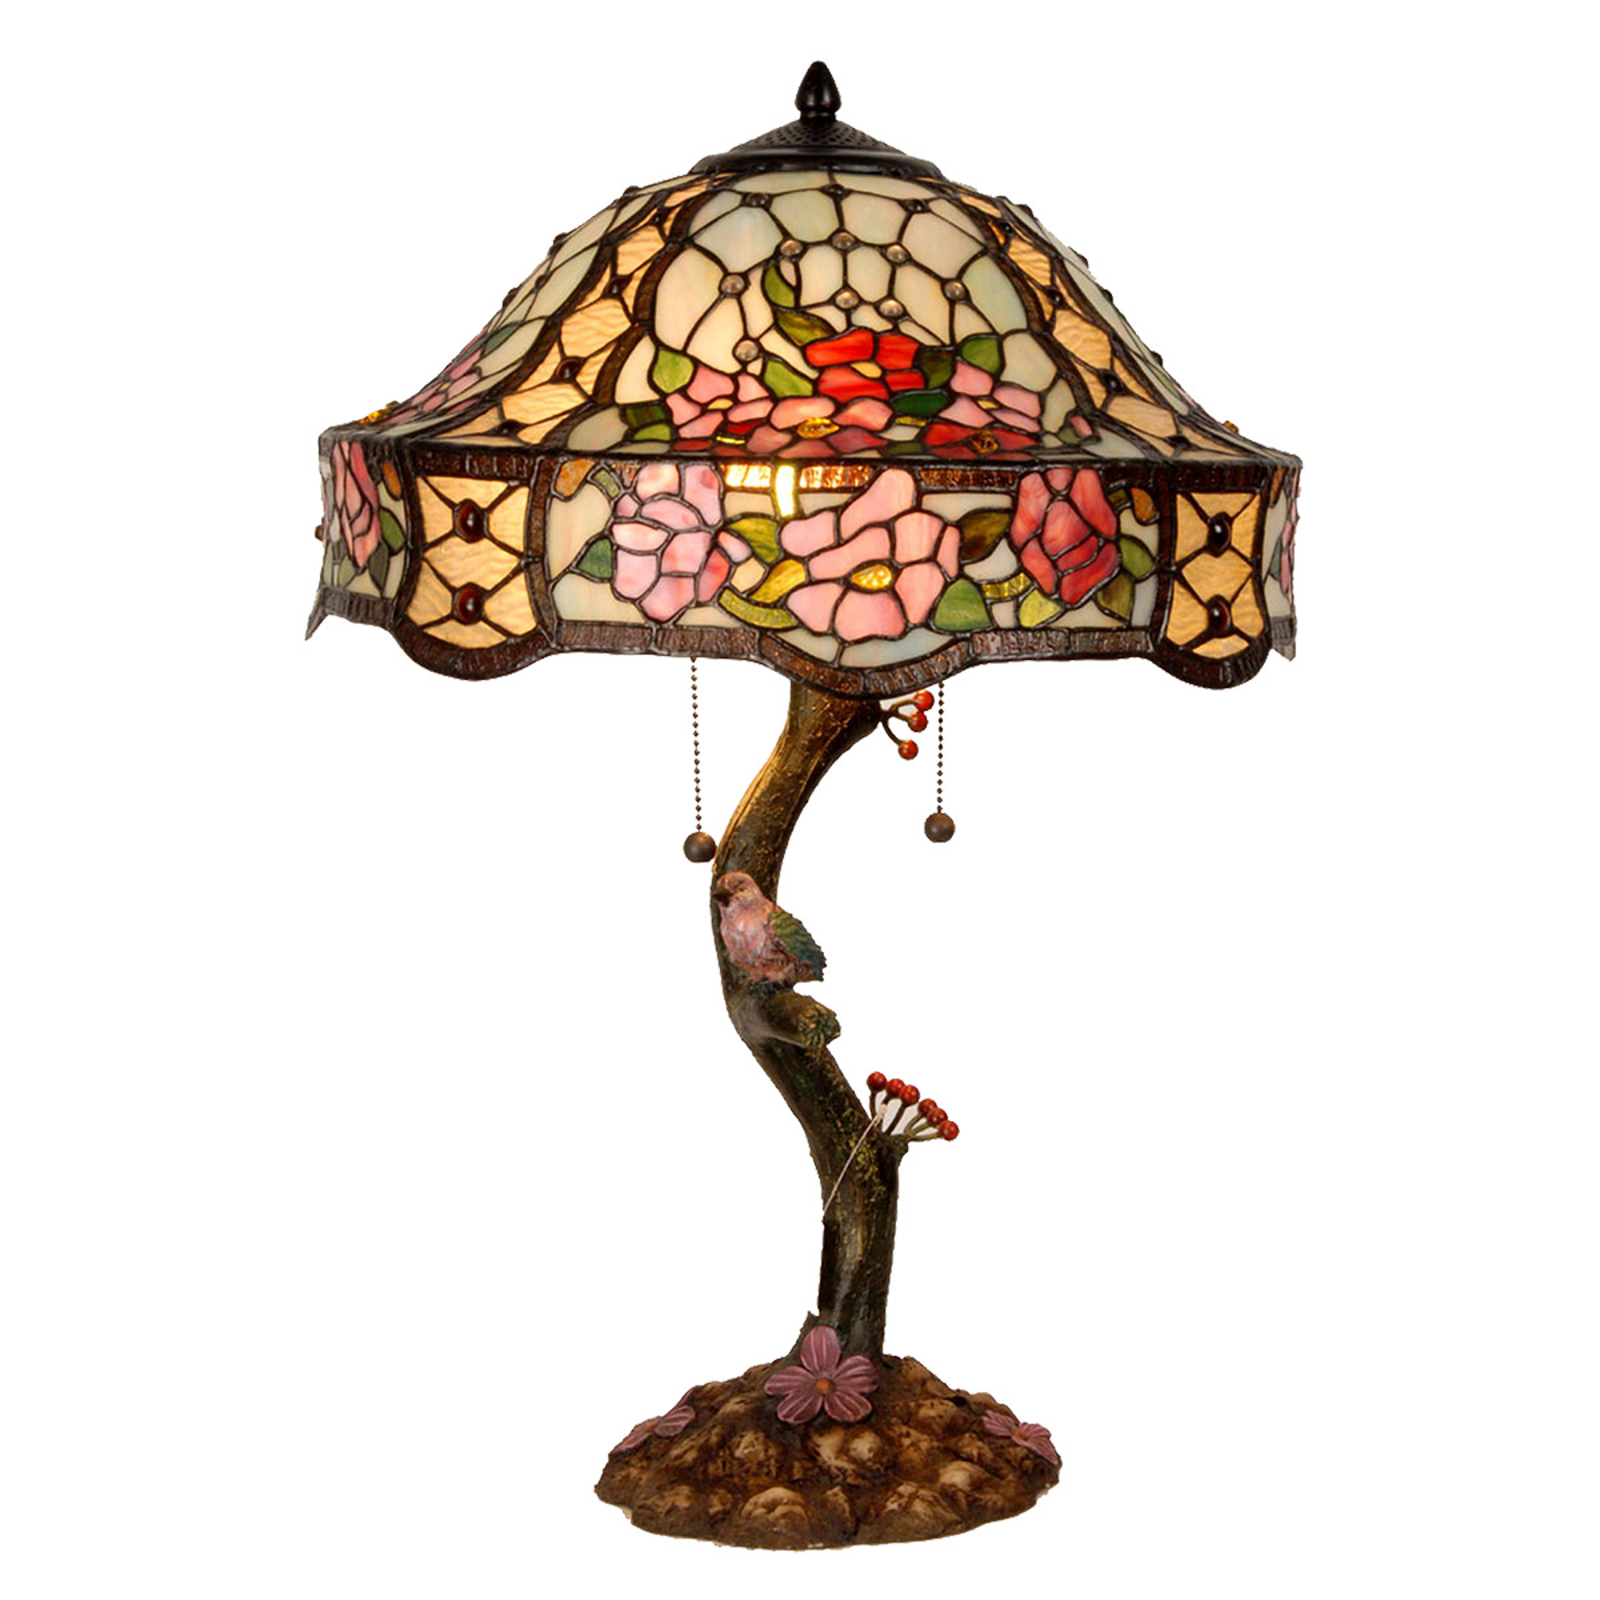 Richly-decorated table lamp Claire_6064184_1